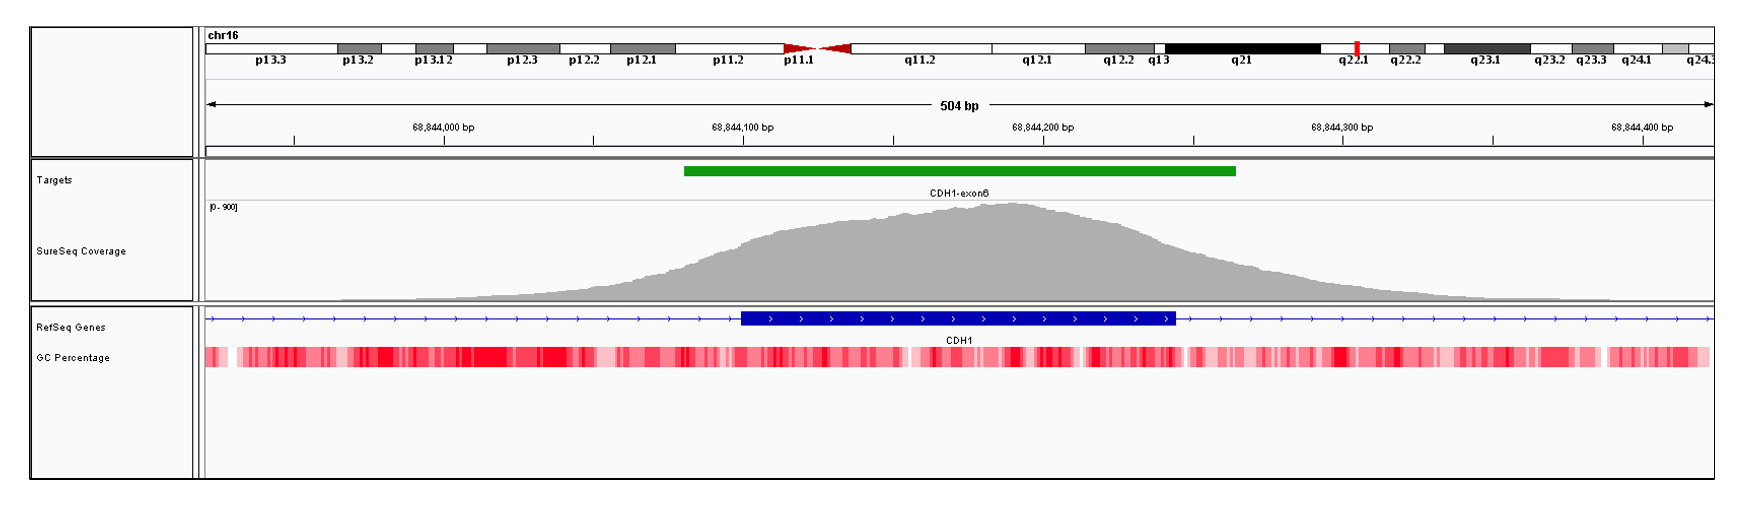 CDH1 Exon 6 (hg19 chr16:68844100-68844244). Depth of coverage per base (grey). Targeted region (green). Gene coding region as defined by RefSeq (blue). GC percentage (red). Image